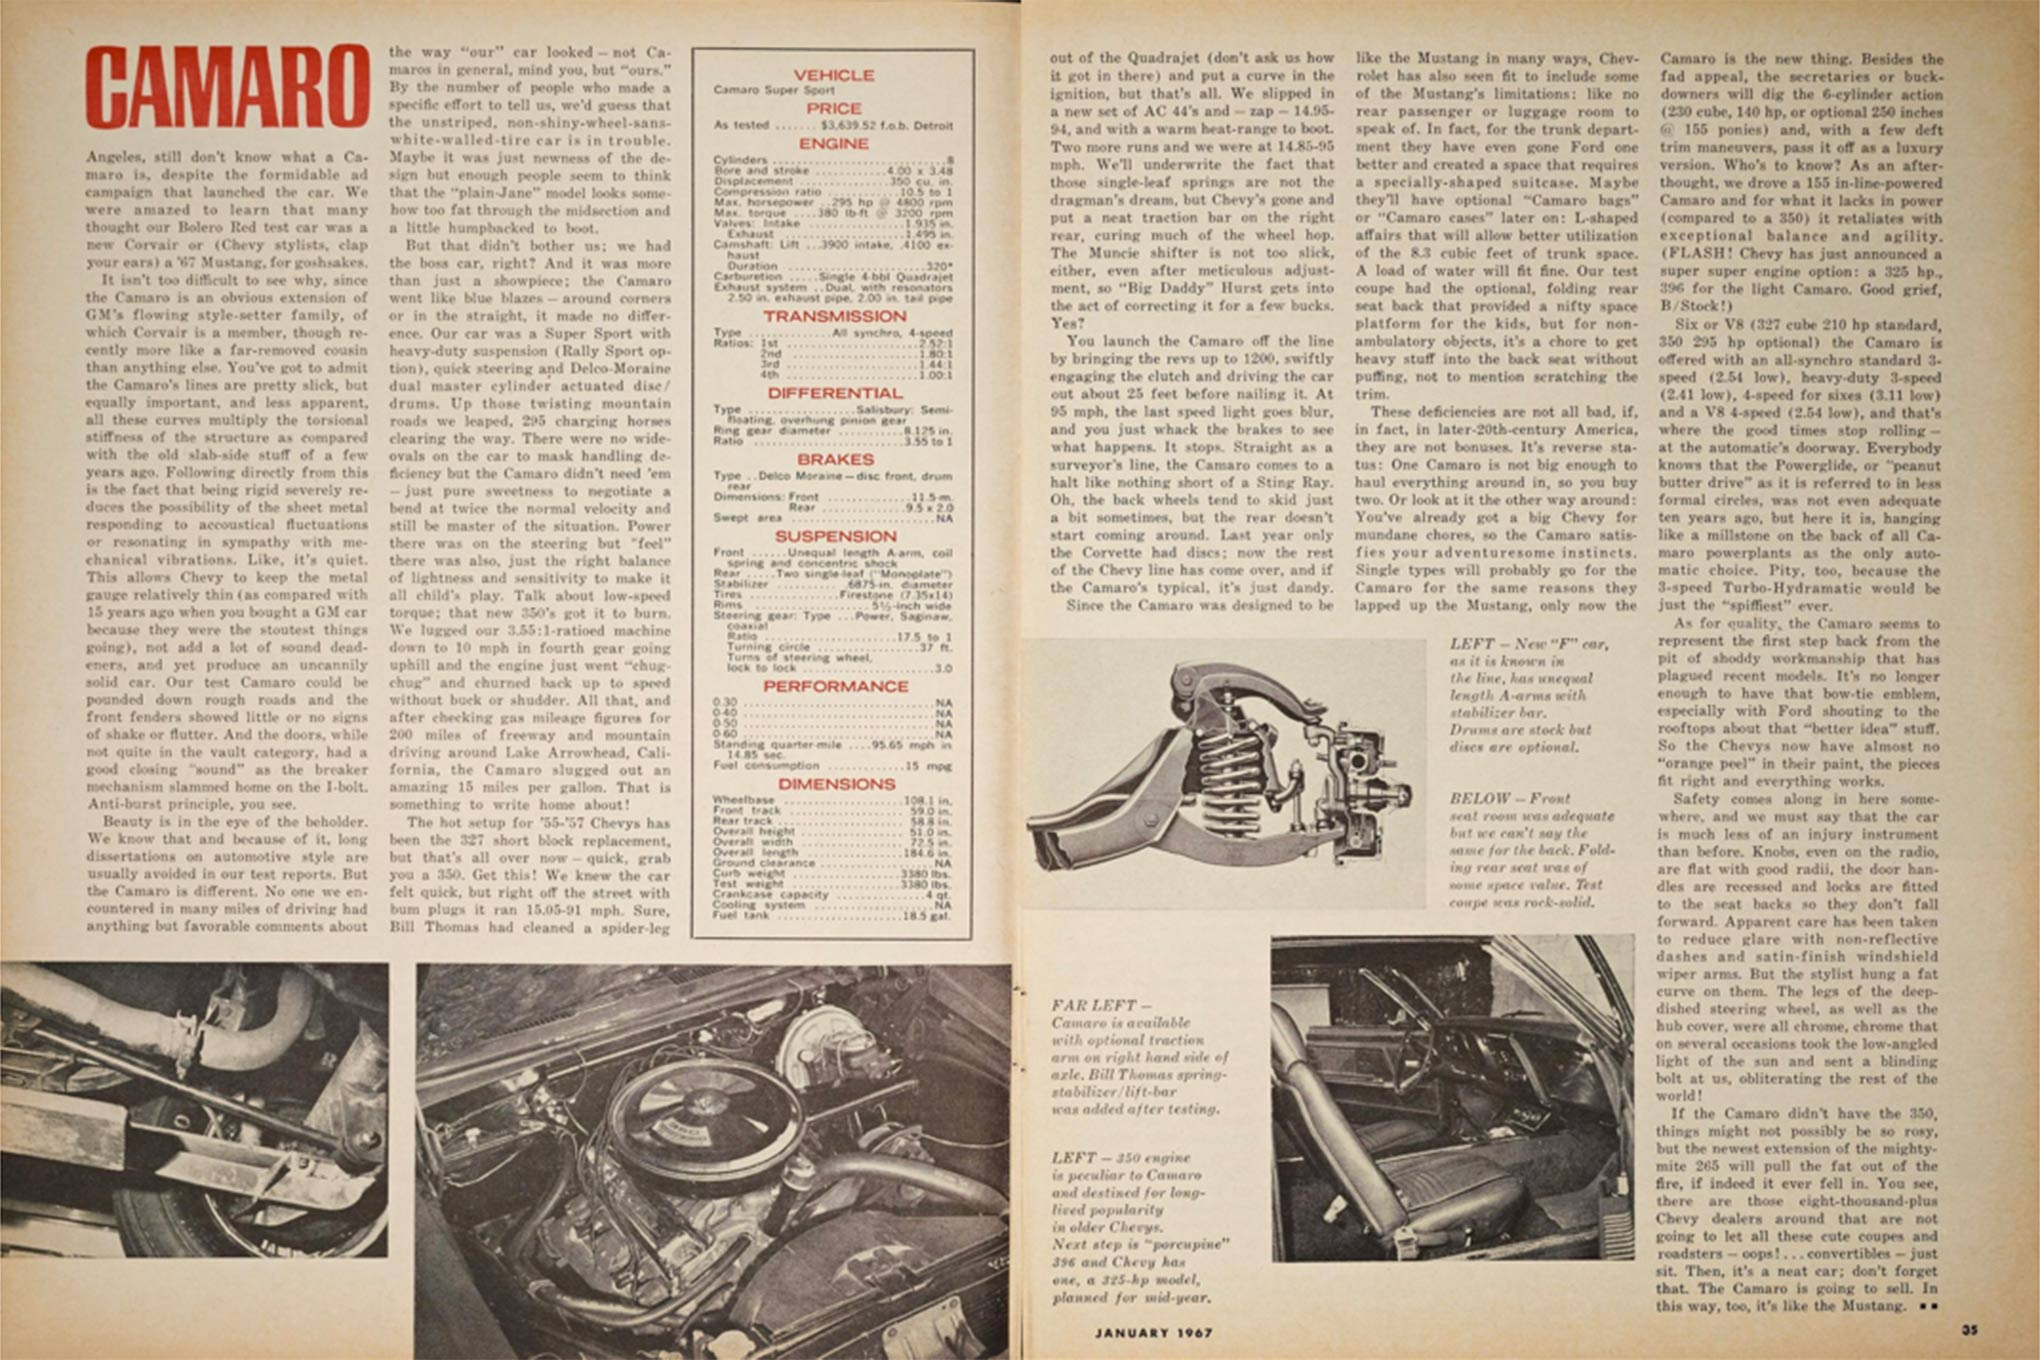 """Front seat room was adequate, but we can't say the same for the back,"" said Eric Dahlquist in the Jan. 1967 issue of HOT ROD, although it could have been one of our current staffers talking about the sixth-generation Camaro moving back to a more first-generation size, taking a toll on rear seat legroom."